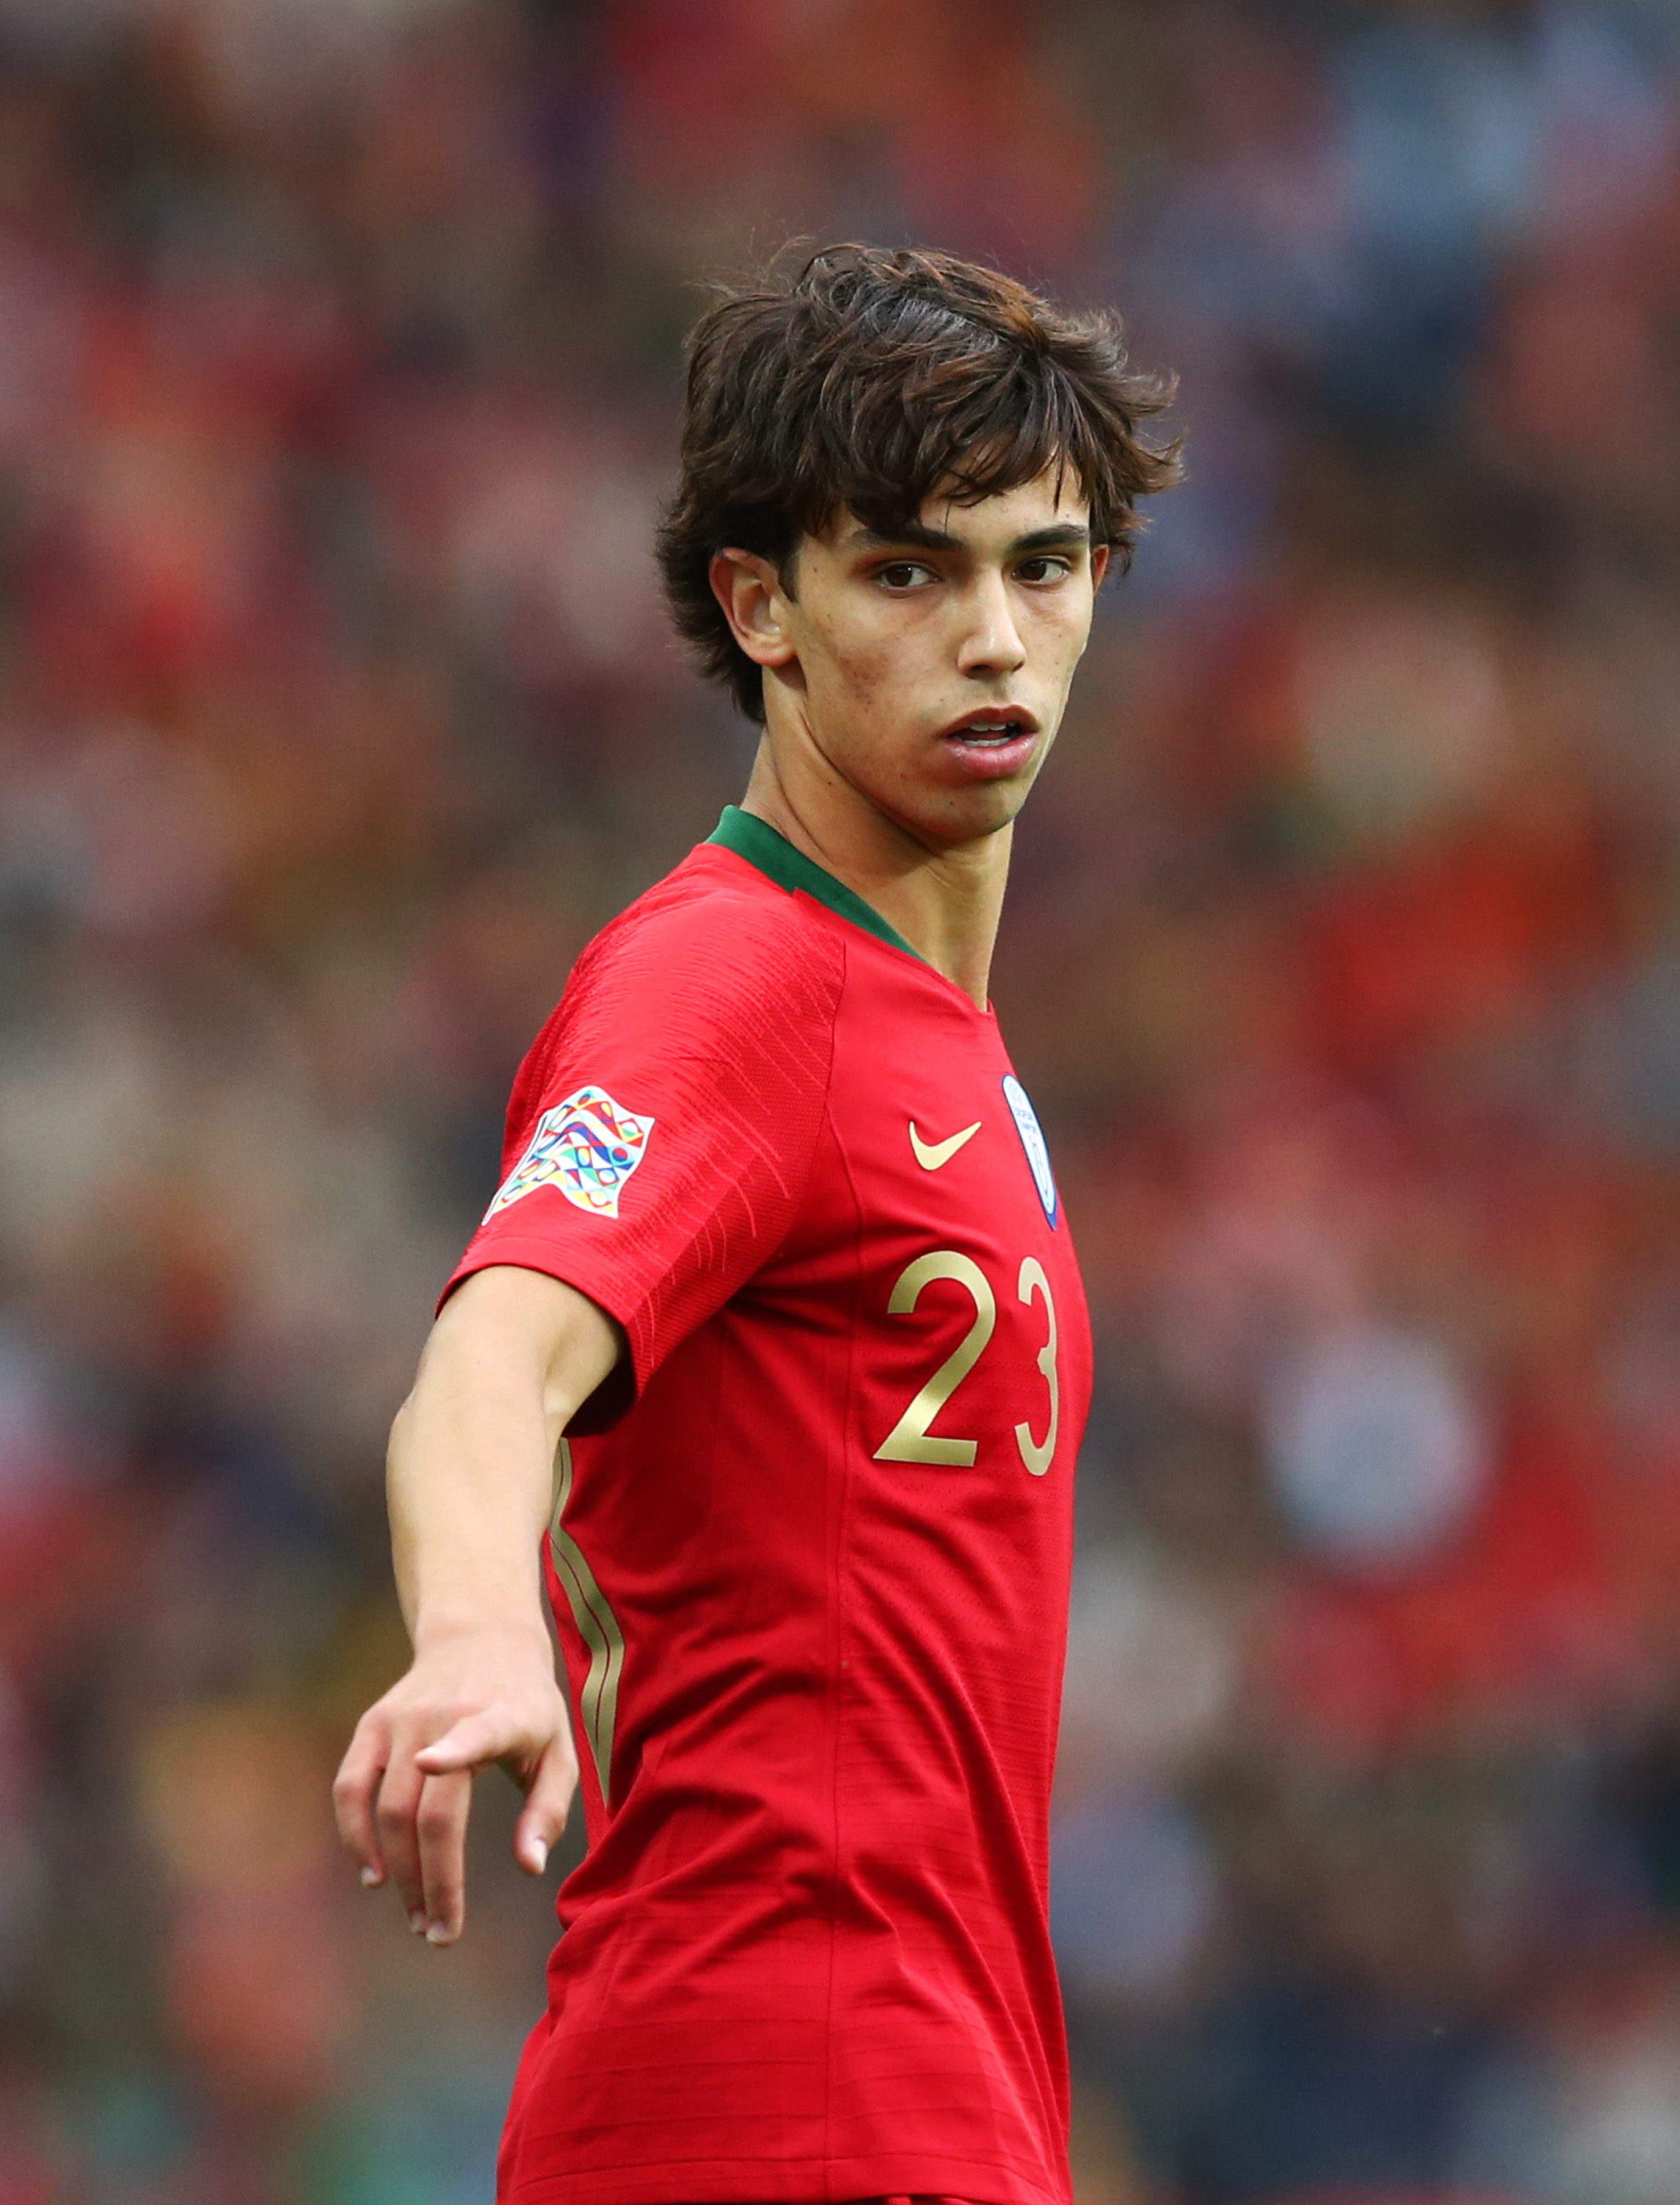 Have Manchester City Missed Out On Felix?